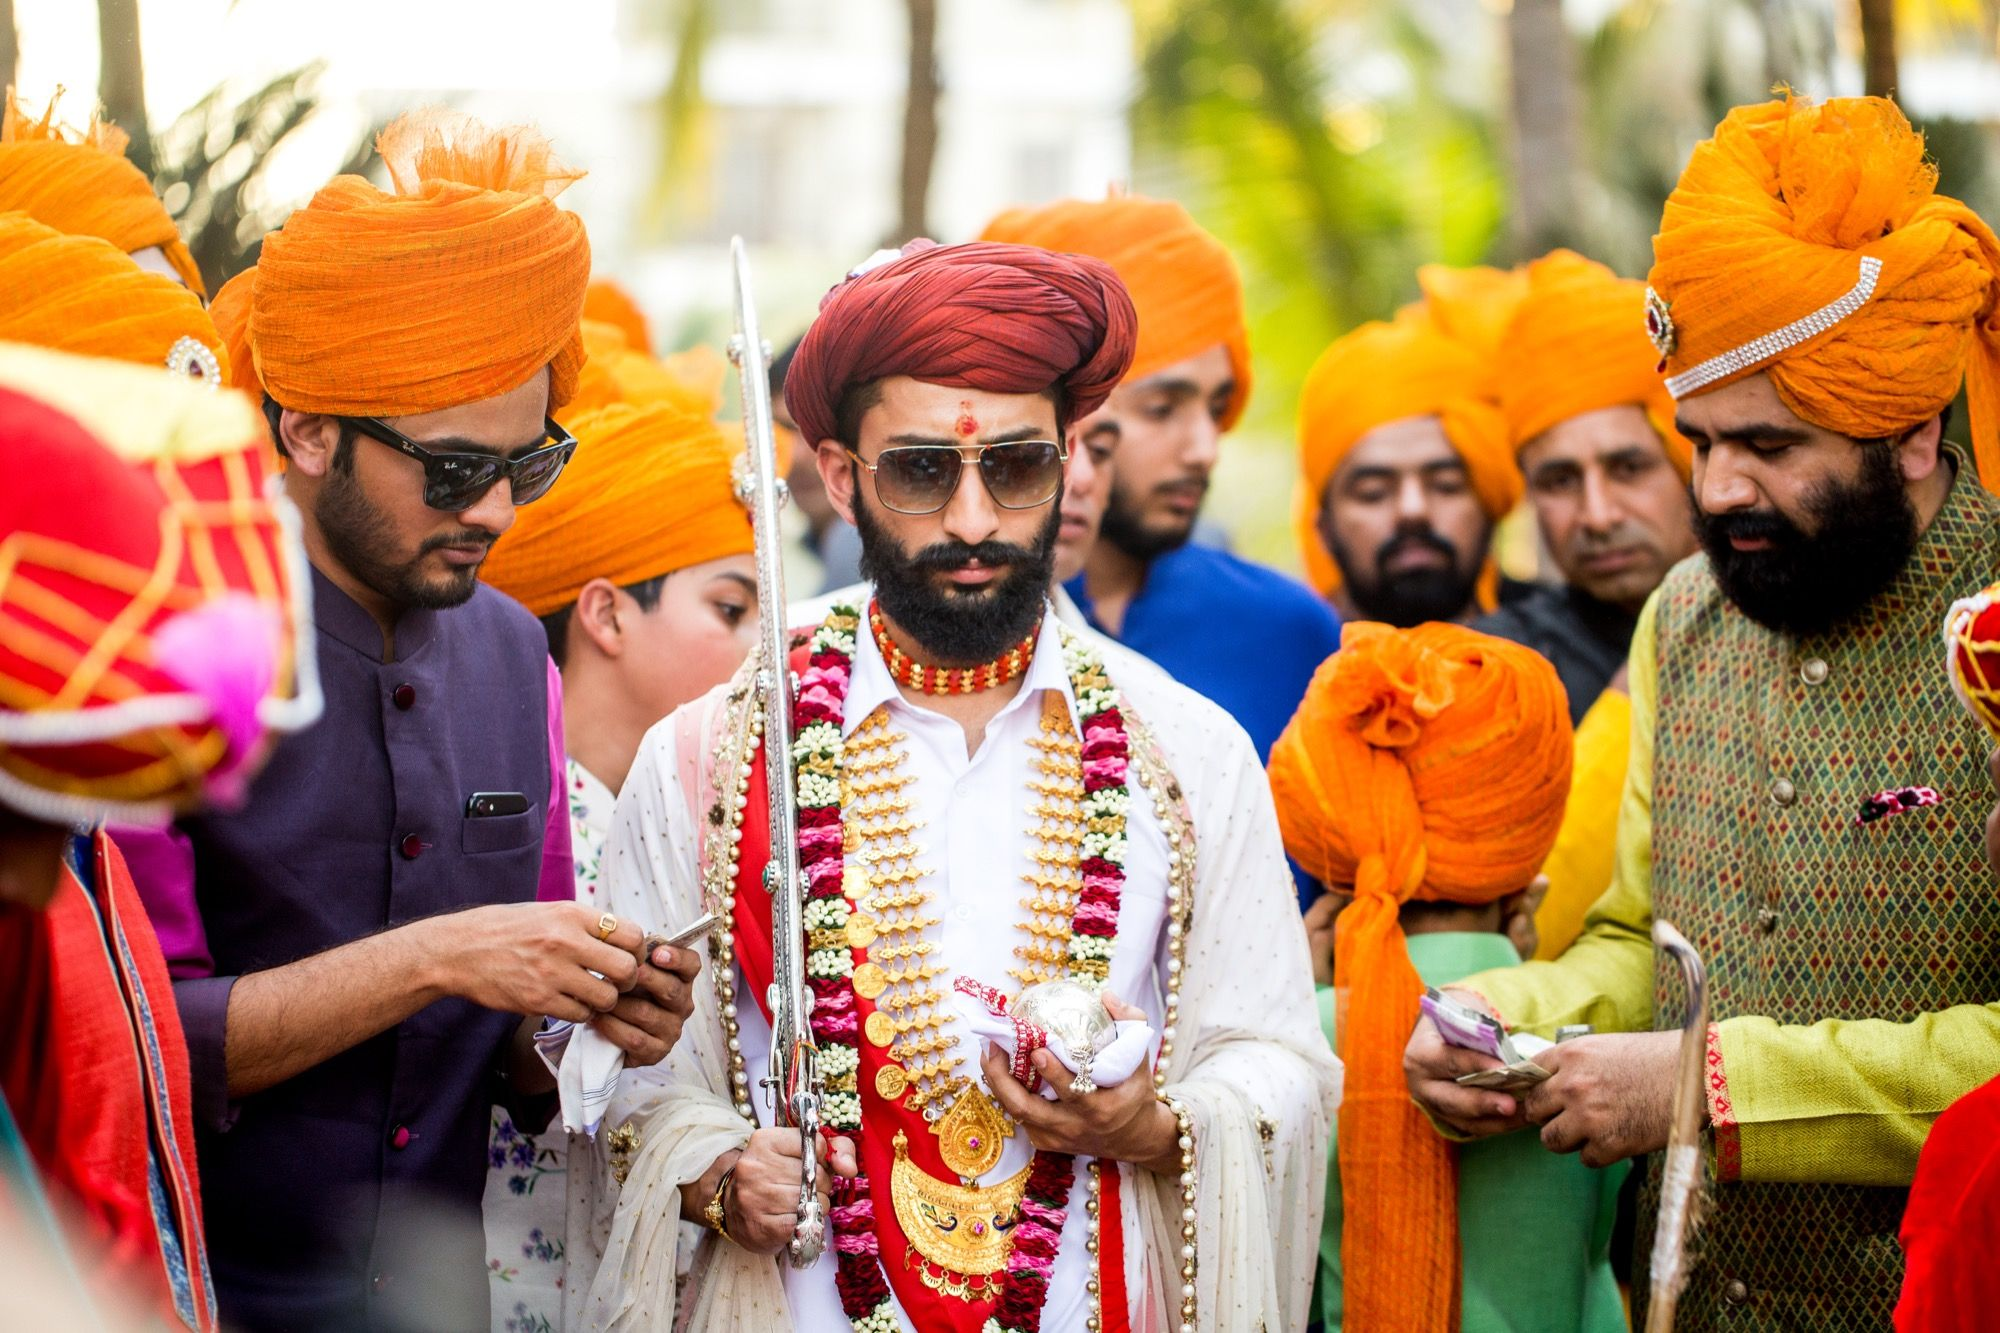 A Groom's Guide to Plan a Crazy Entrance to the Wedding Reception